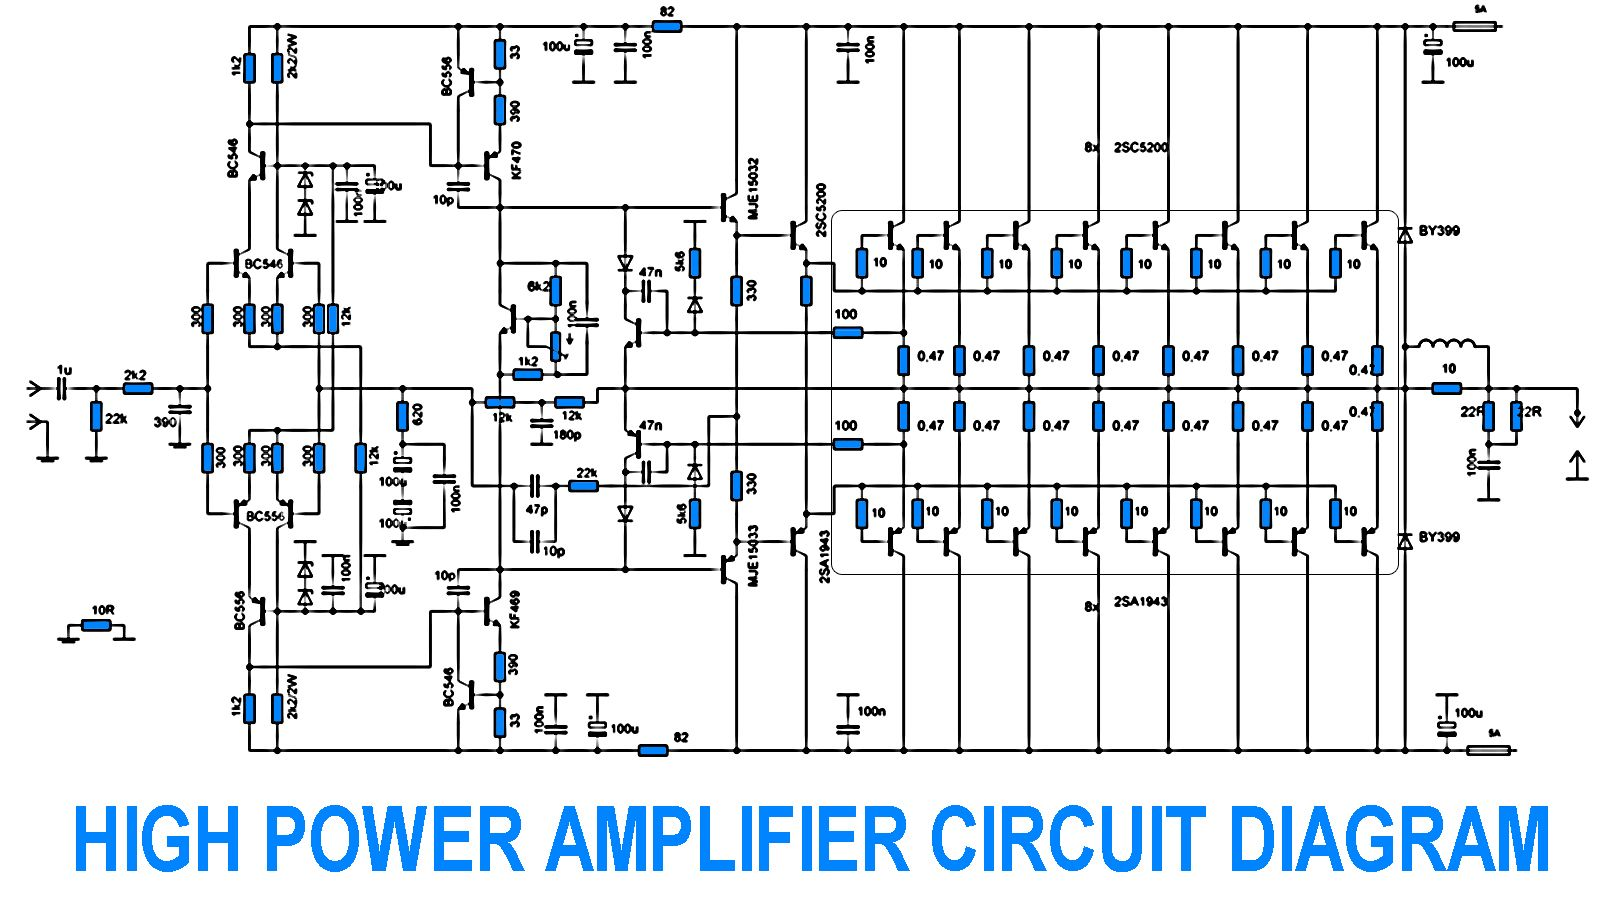 Amplifier Schematic Diagram - Wiring Diagram Img